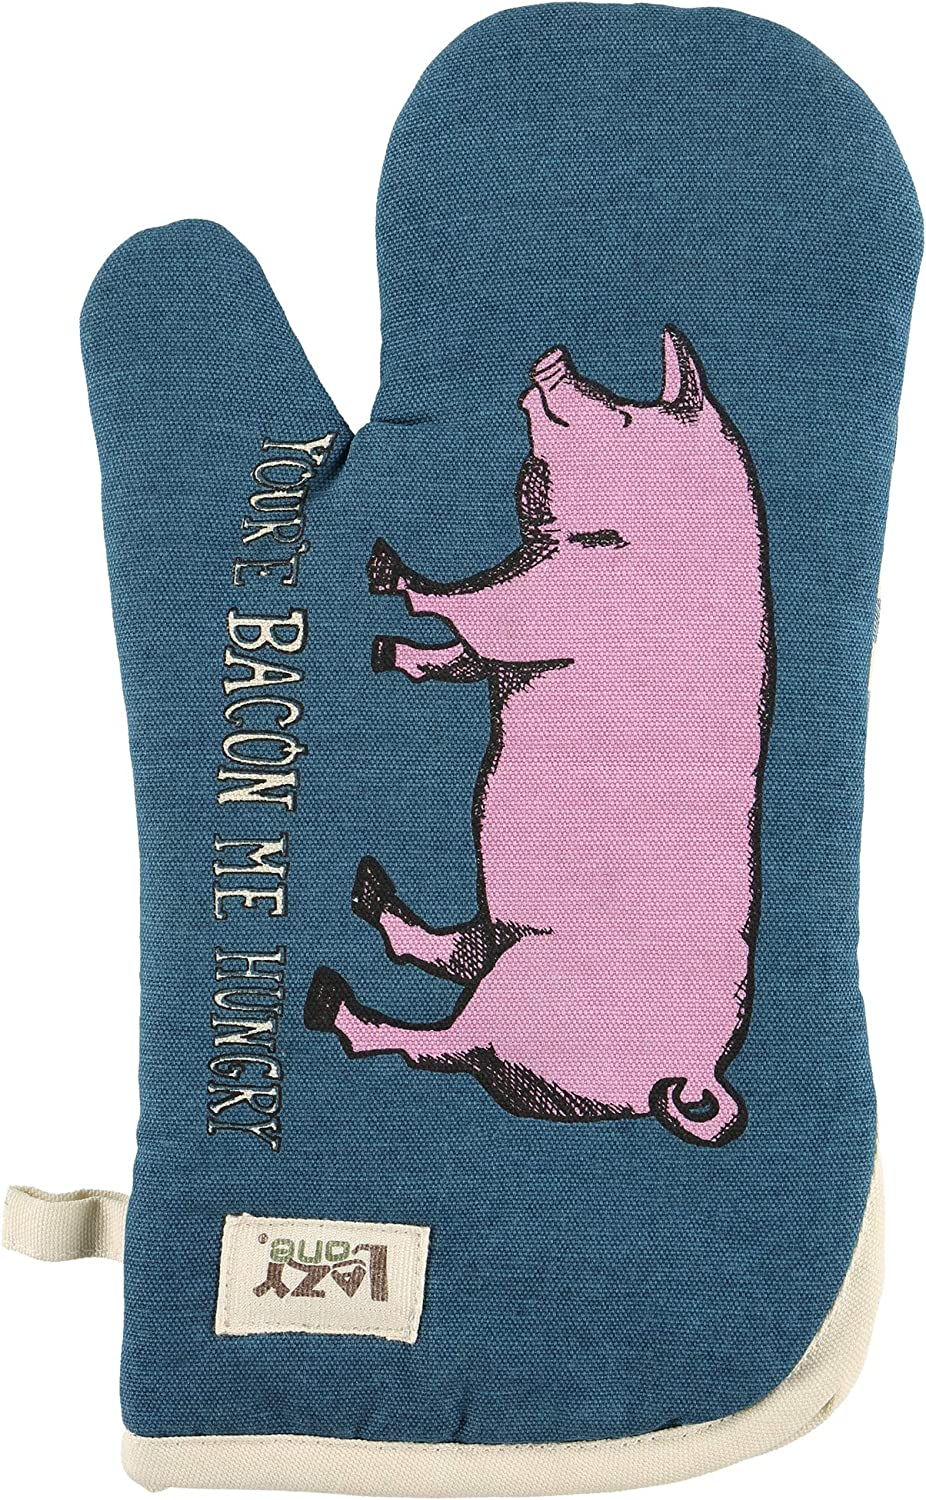 Bed Hog Durable Canvas Cottons Oven Mits by LazyOne   Cabin, Home and Kitchen Animal Gifts (ONE Size)